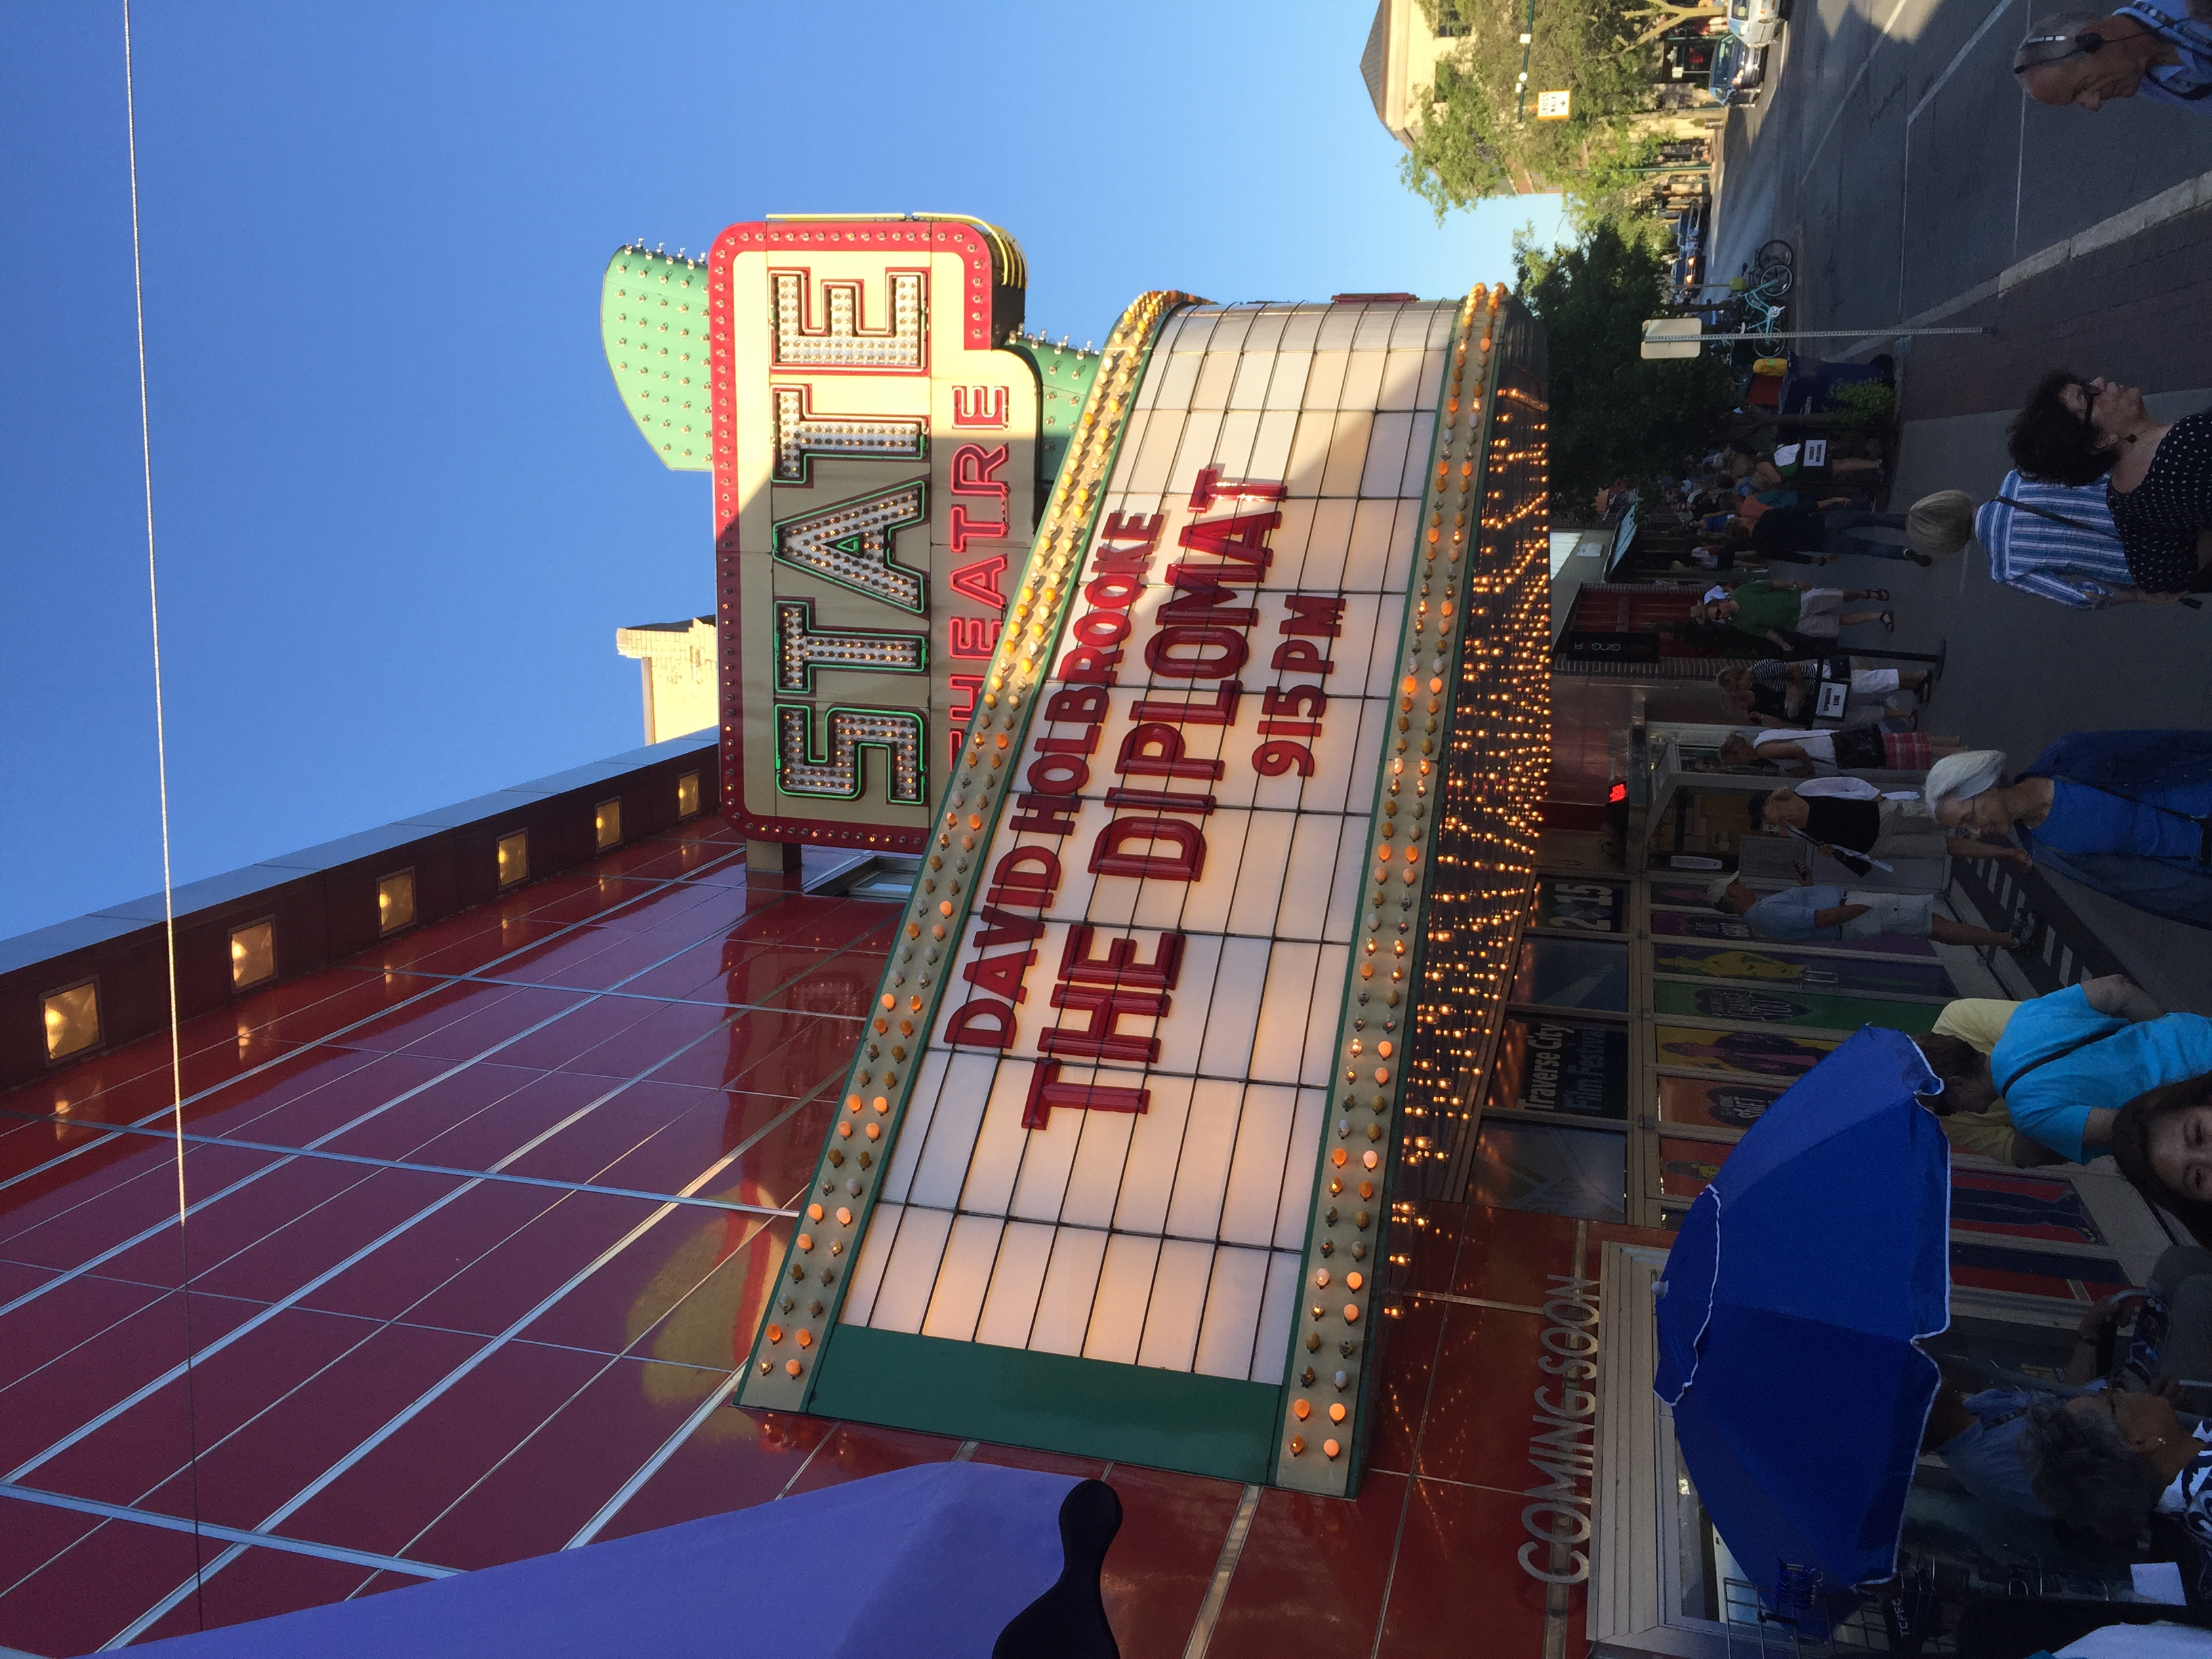 Photo taken by Director David Holbrooke prior to the 2015 Traverse City Film Festival screening